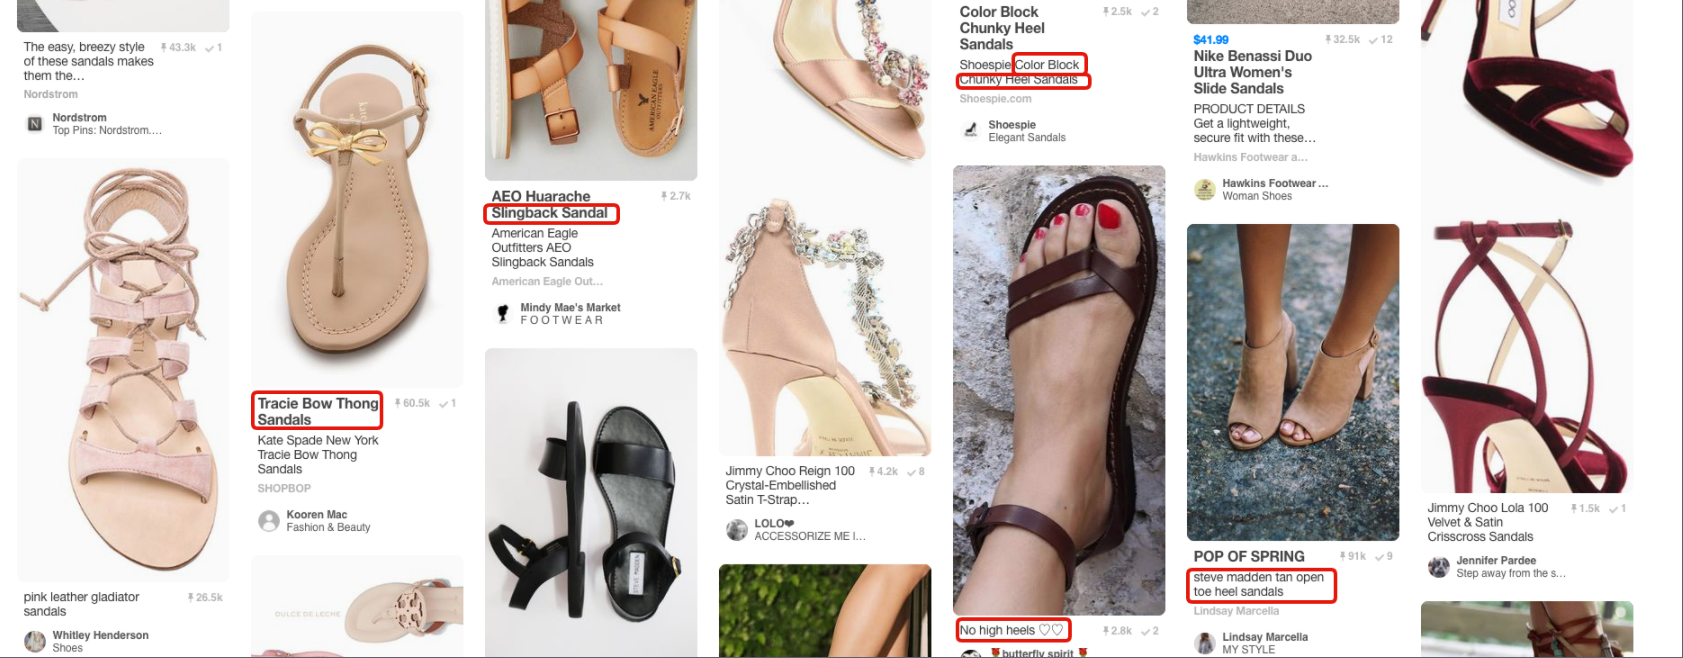 pinterest keyword search results